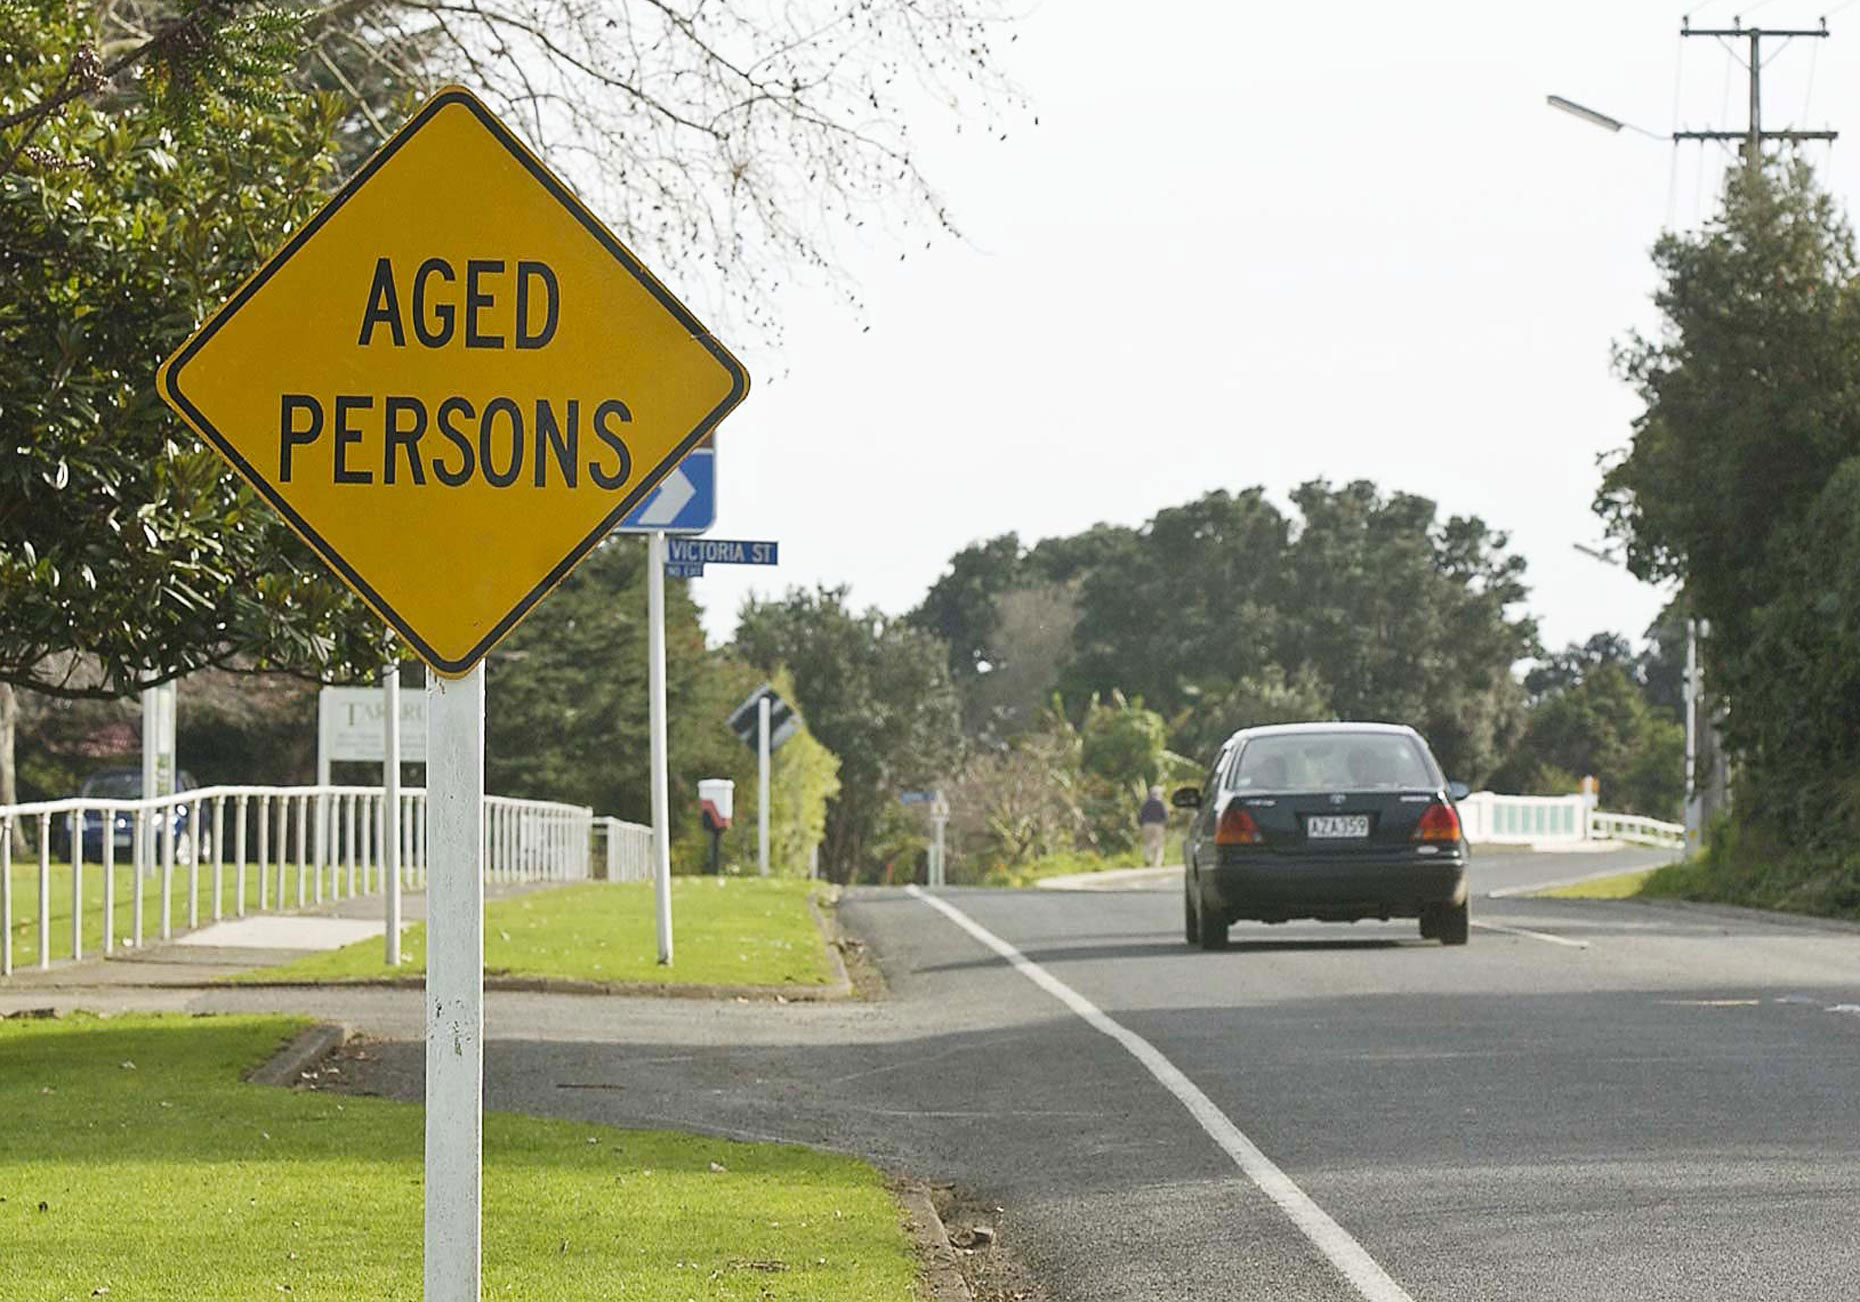 PAR_PhotoReporters_aged-persons-road-crossing-sign